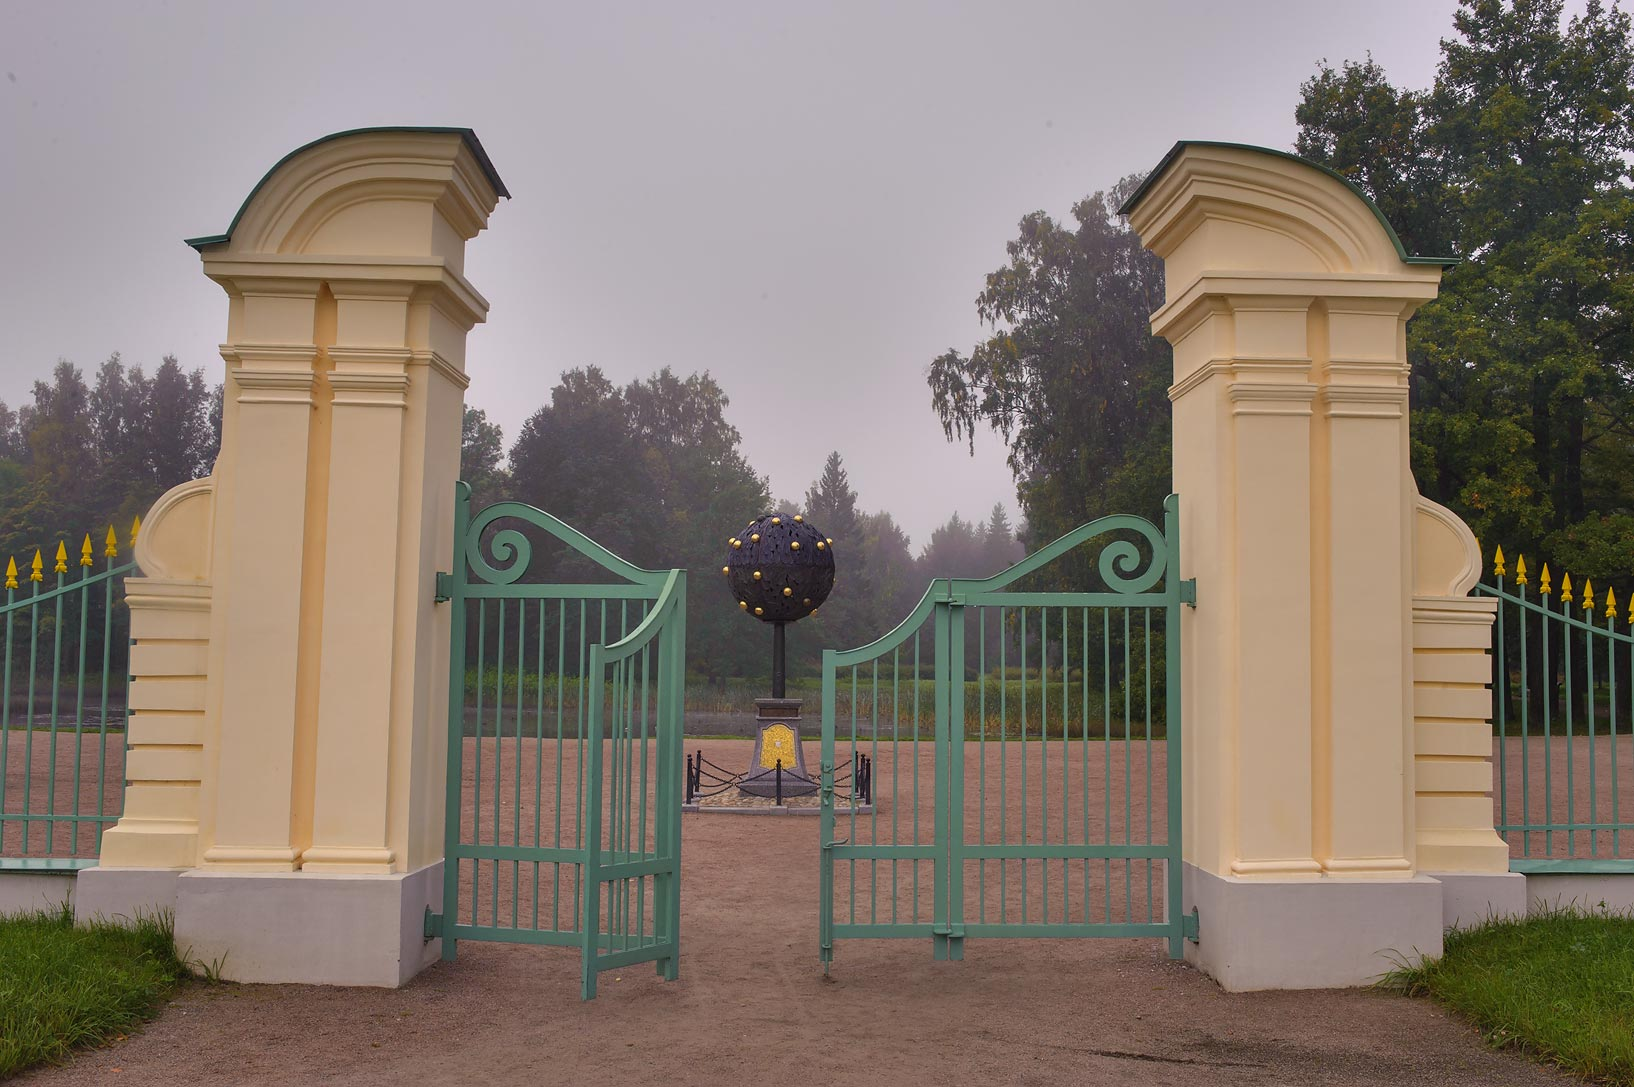 Gate of backyard of Great (Menshikov's) Palace in...West from St.Petersburg, Russia